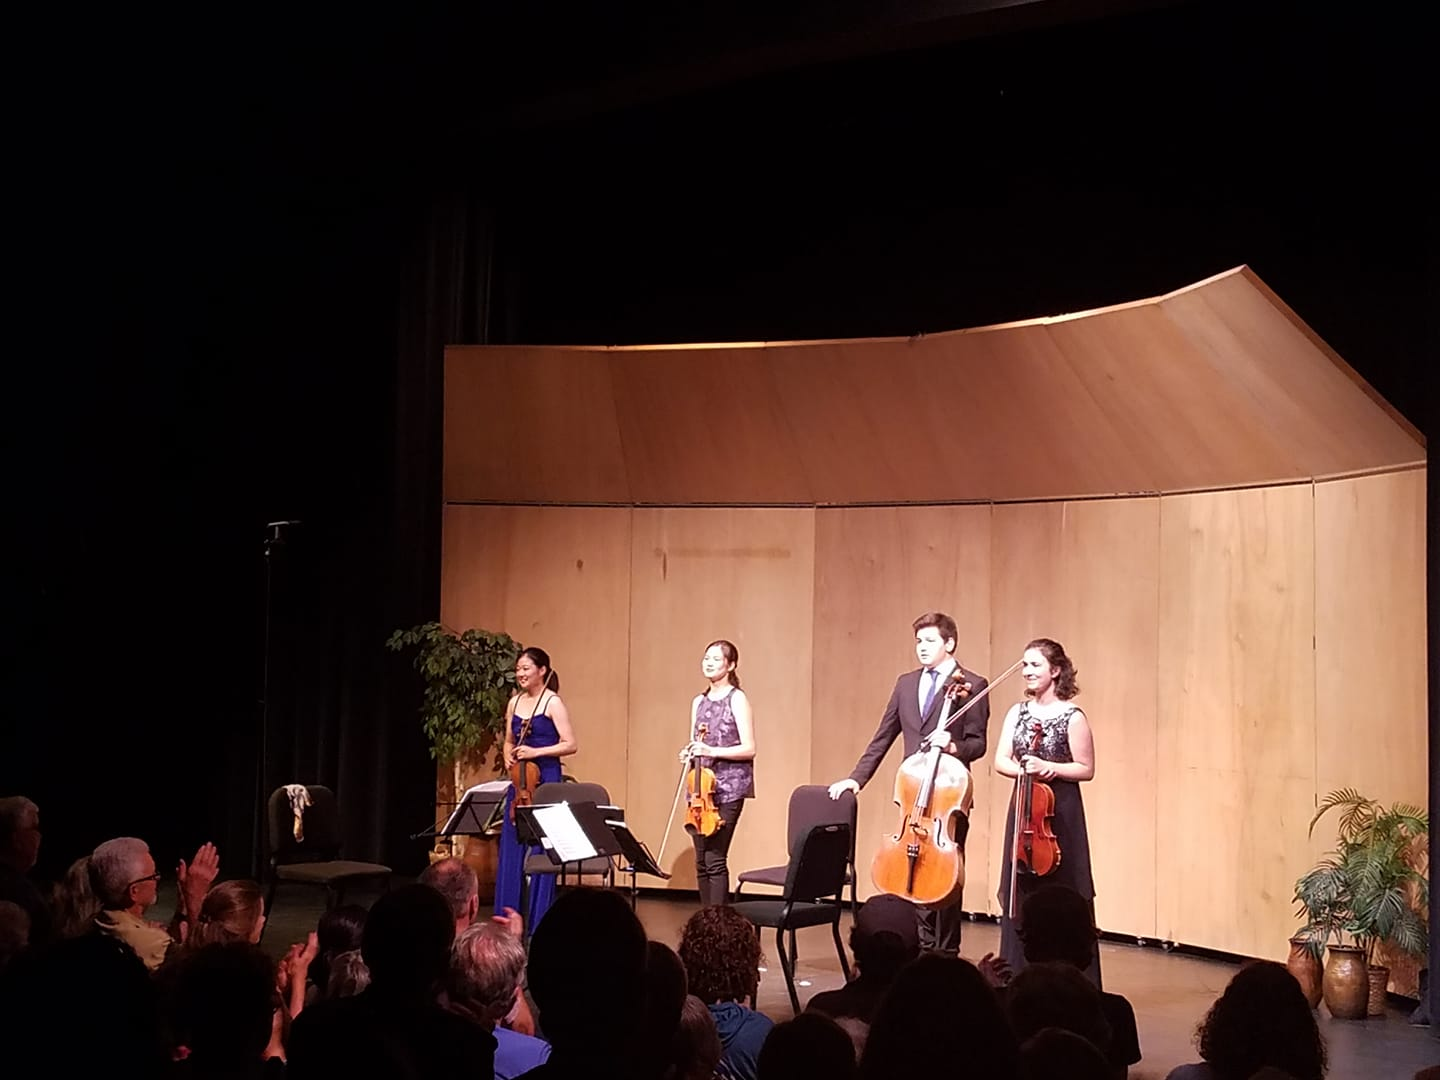 Student quartet with three violins and a cello standing onstage